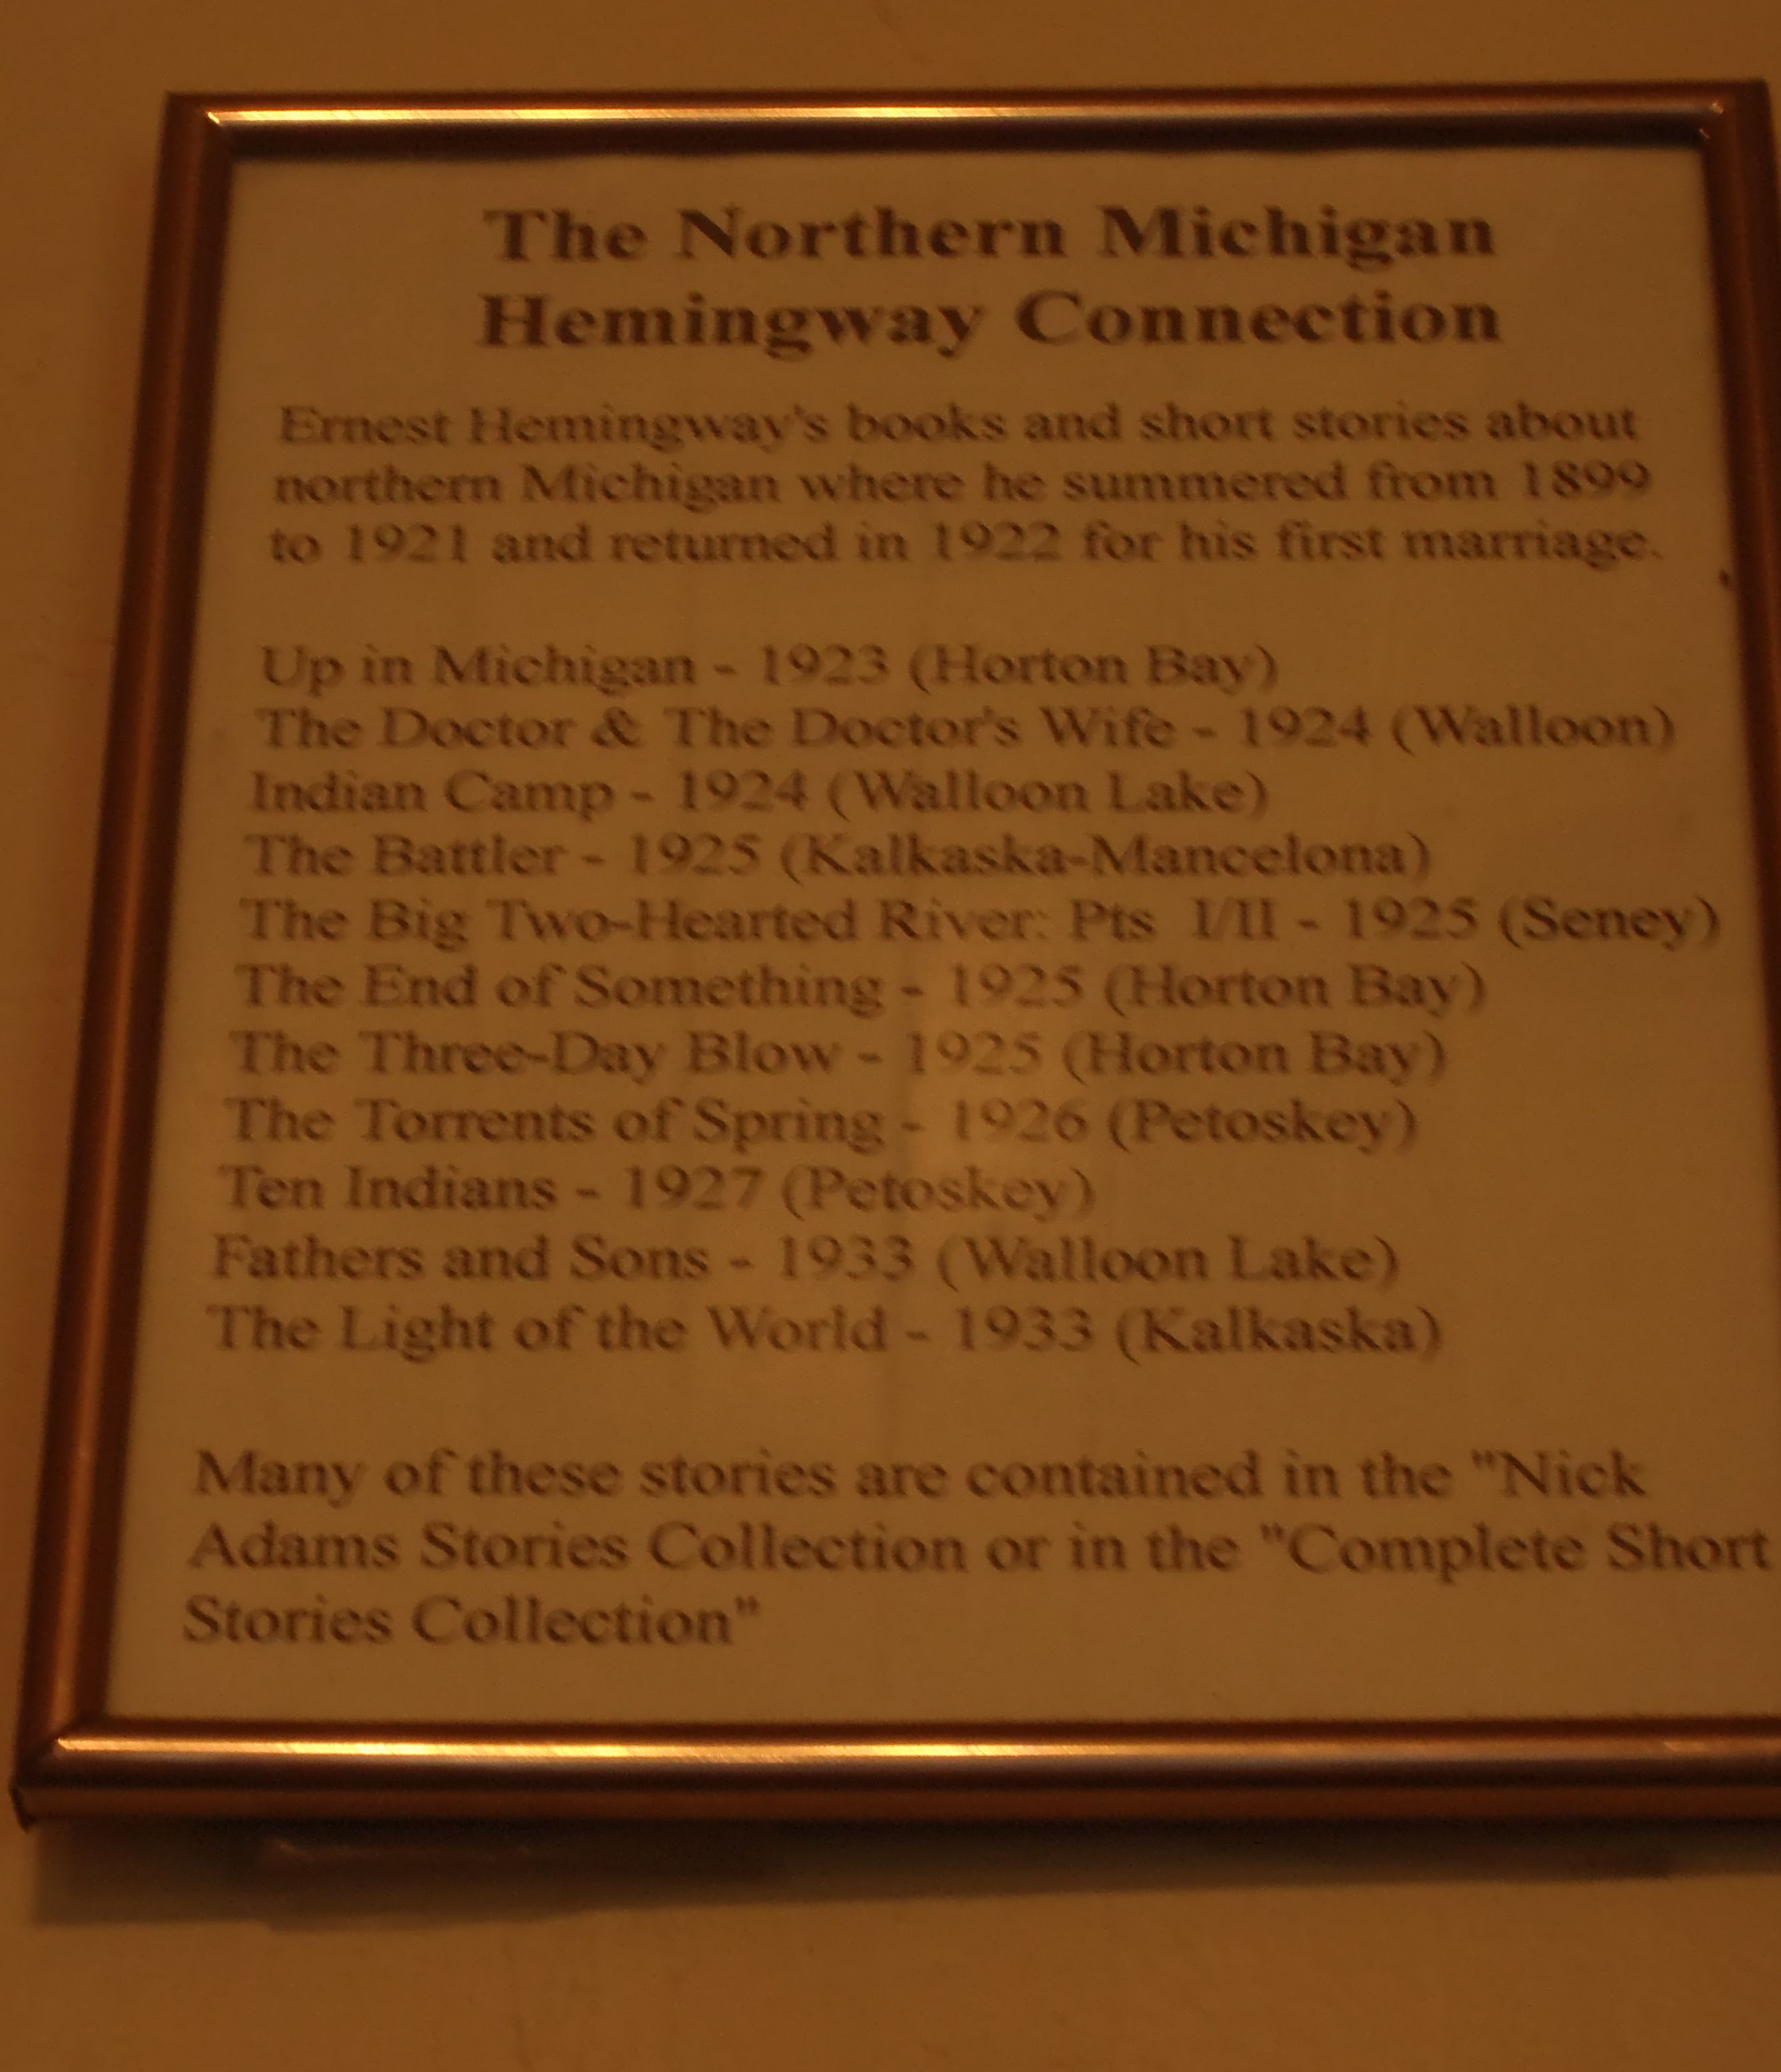 Titles of Hemingway's stories which were inspired by his time in N. MI.